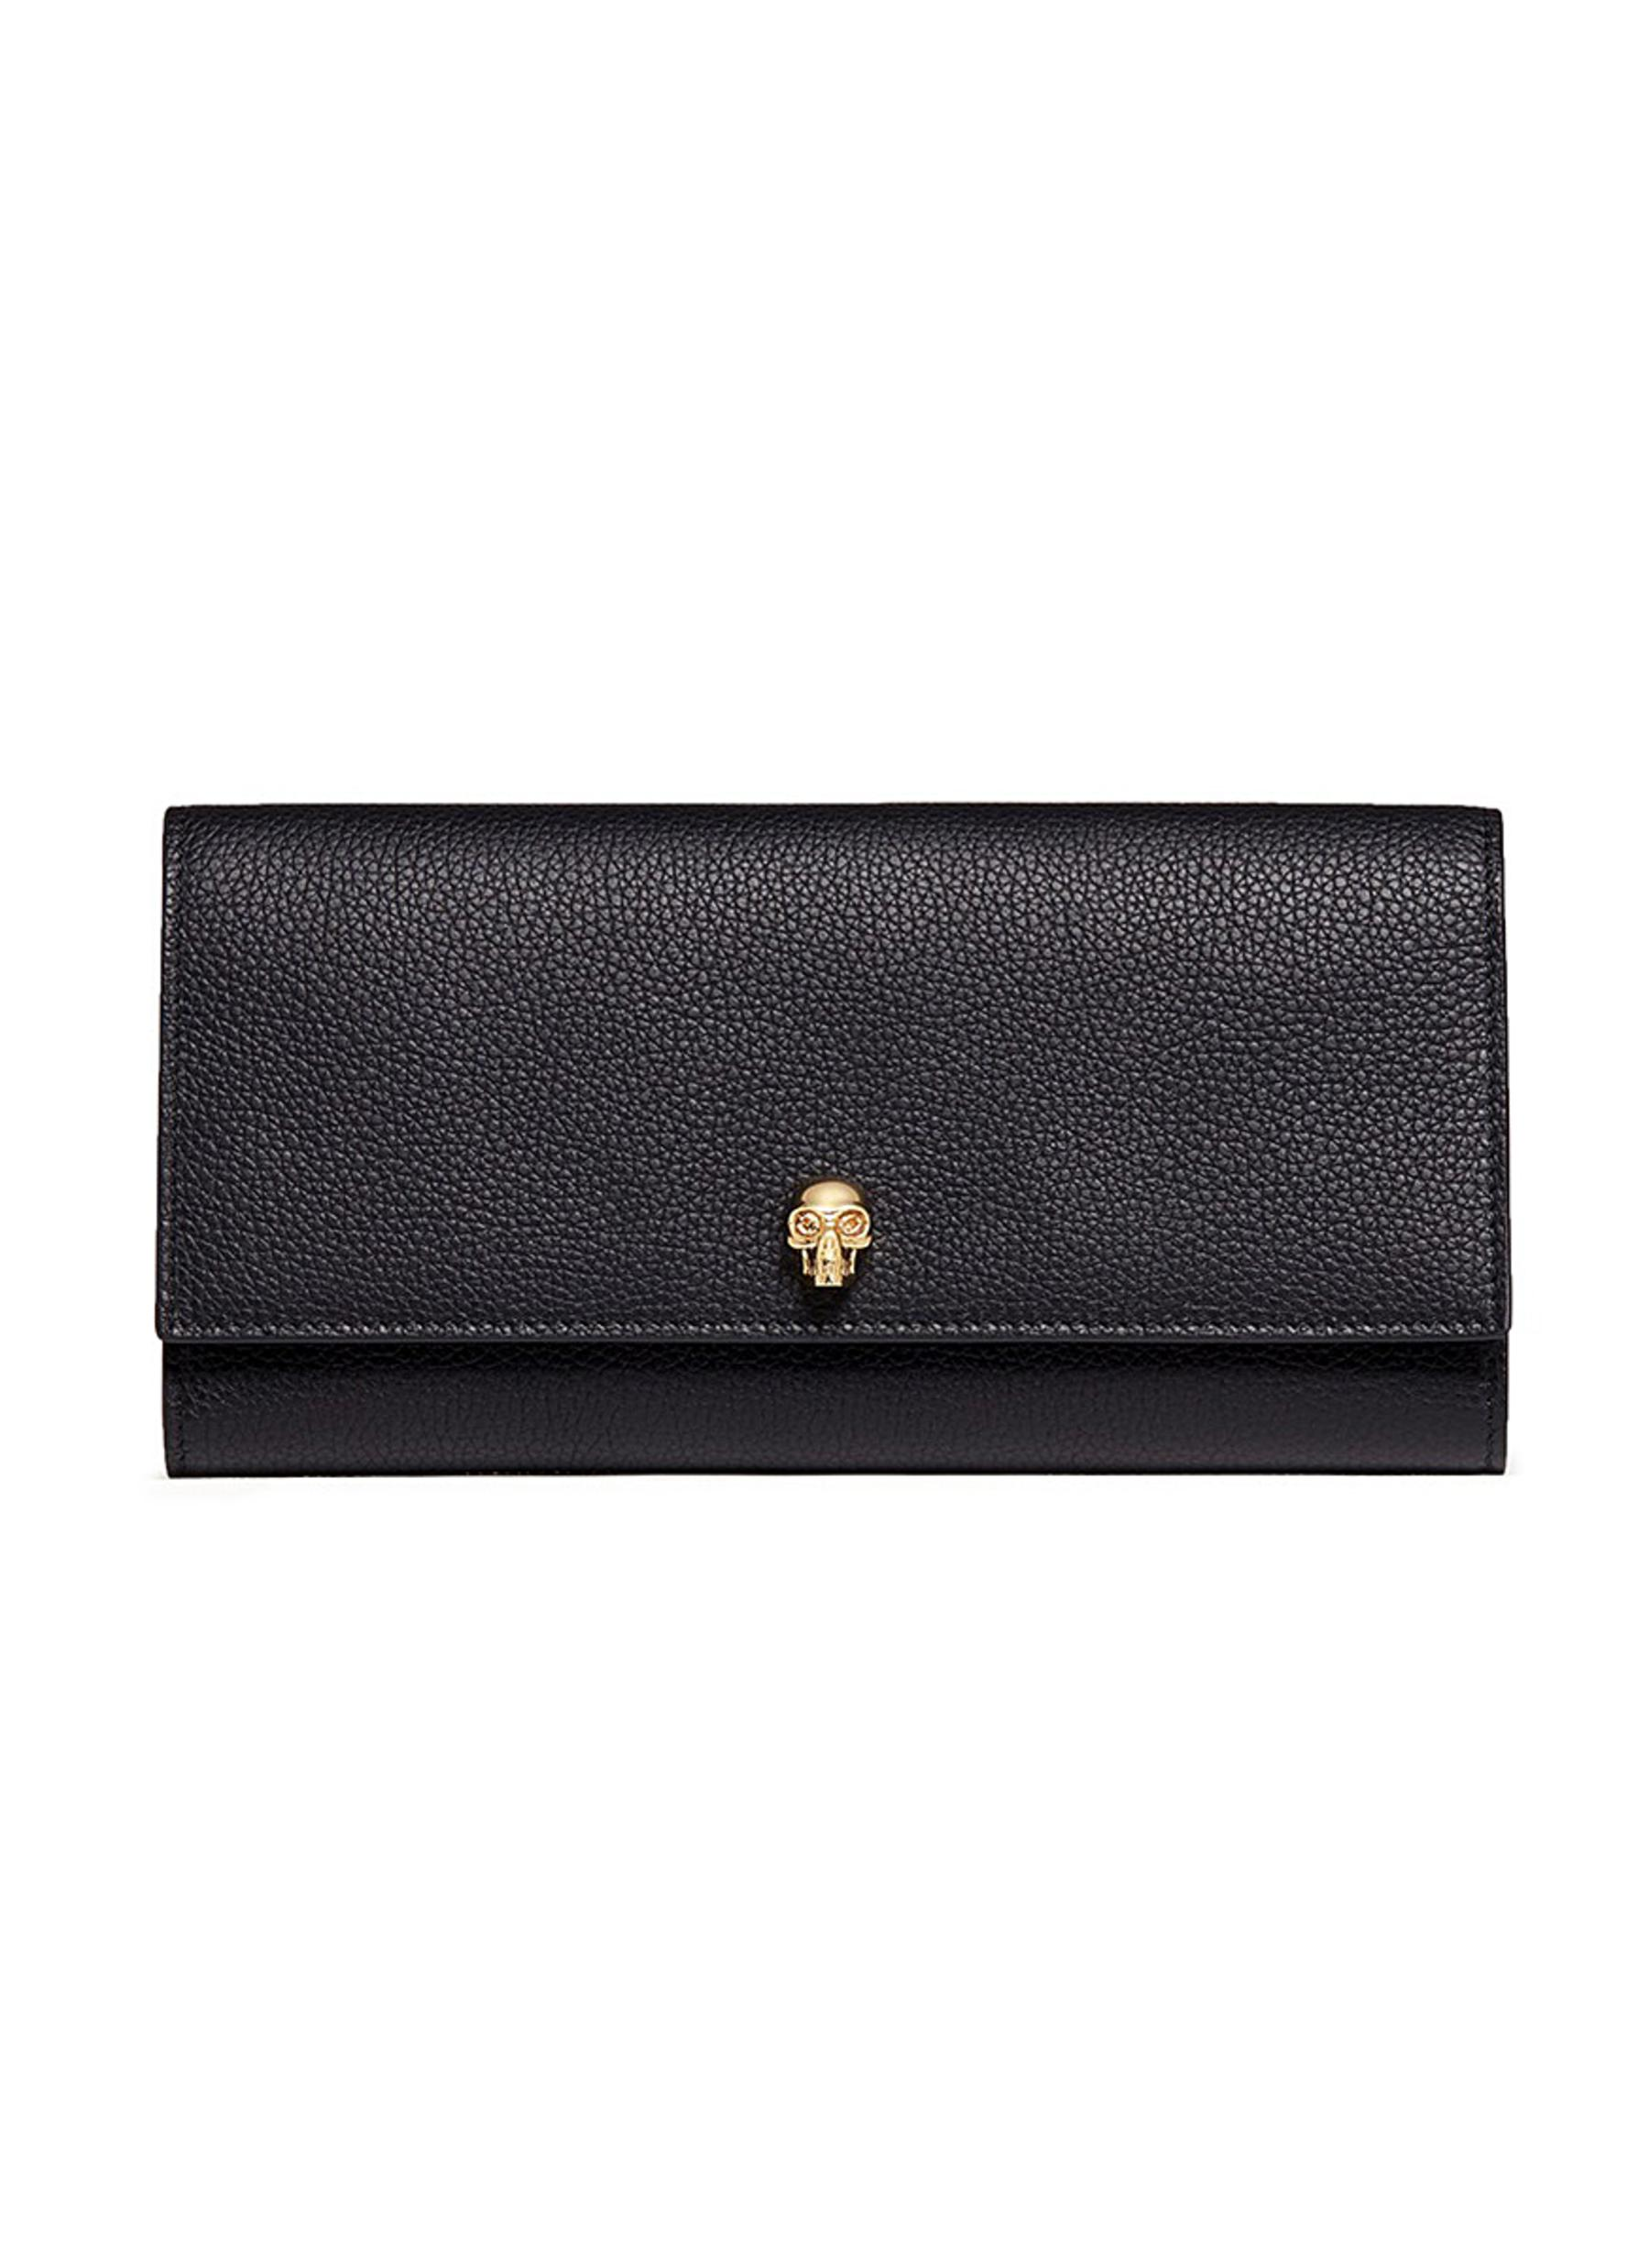 Skull leather travel wallet by Alexander McQueen